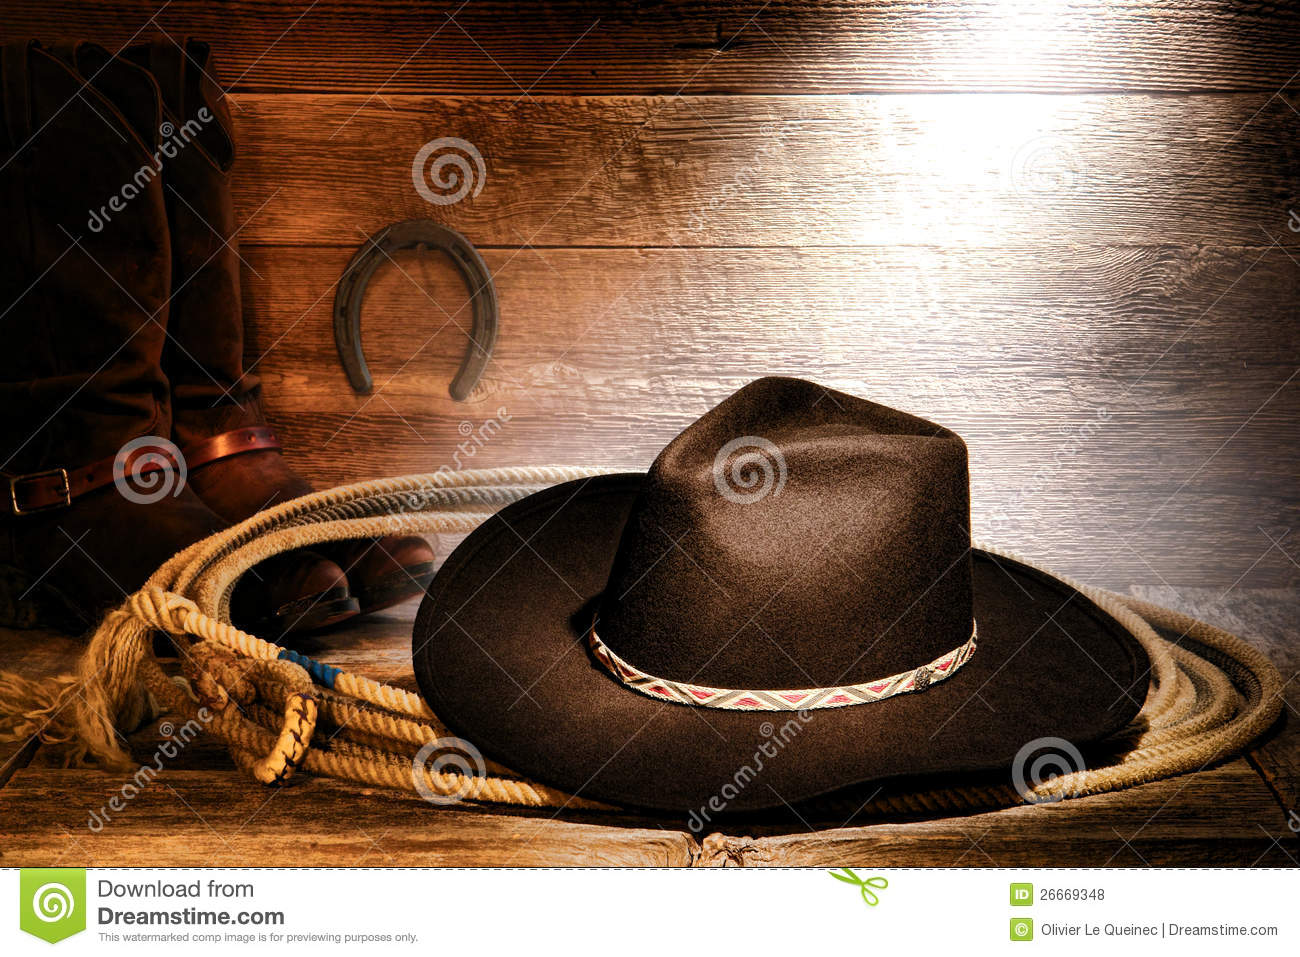 8a924fb6d13c4 American West rodeo cowboy black felt hat on an authentic Western roping  lariat lasso with leather riding boots on weathered wood floor in an old  ranch barn